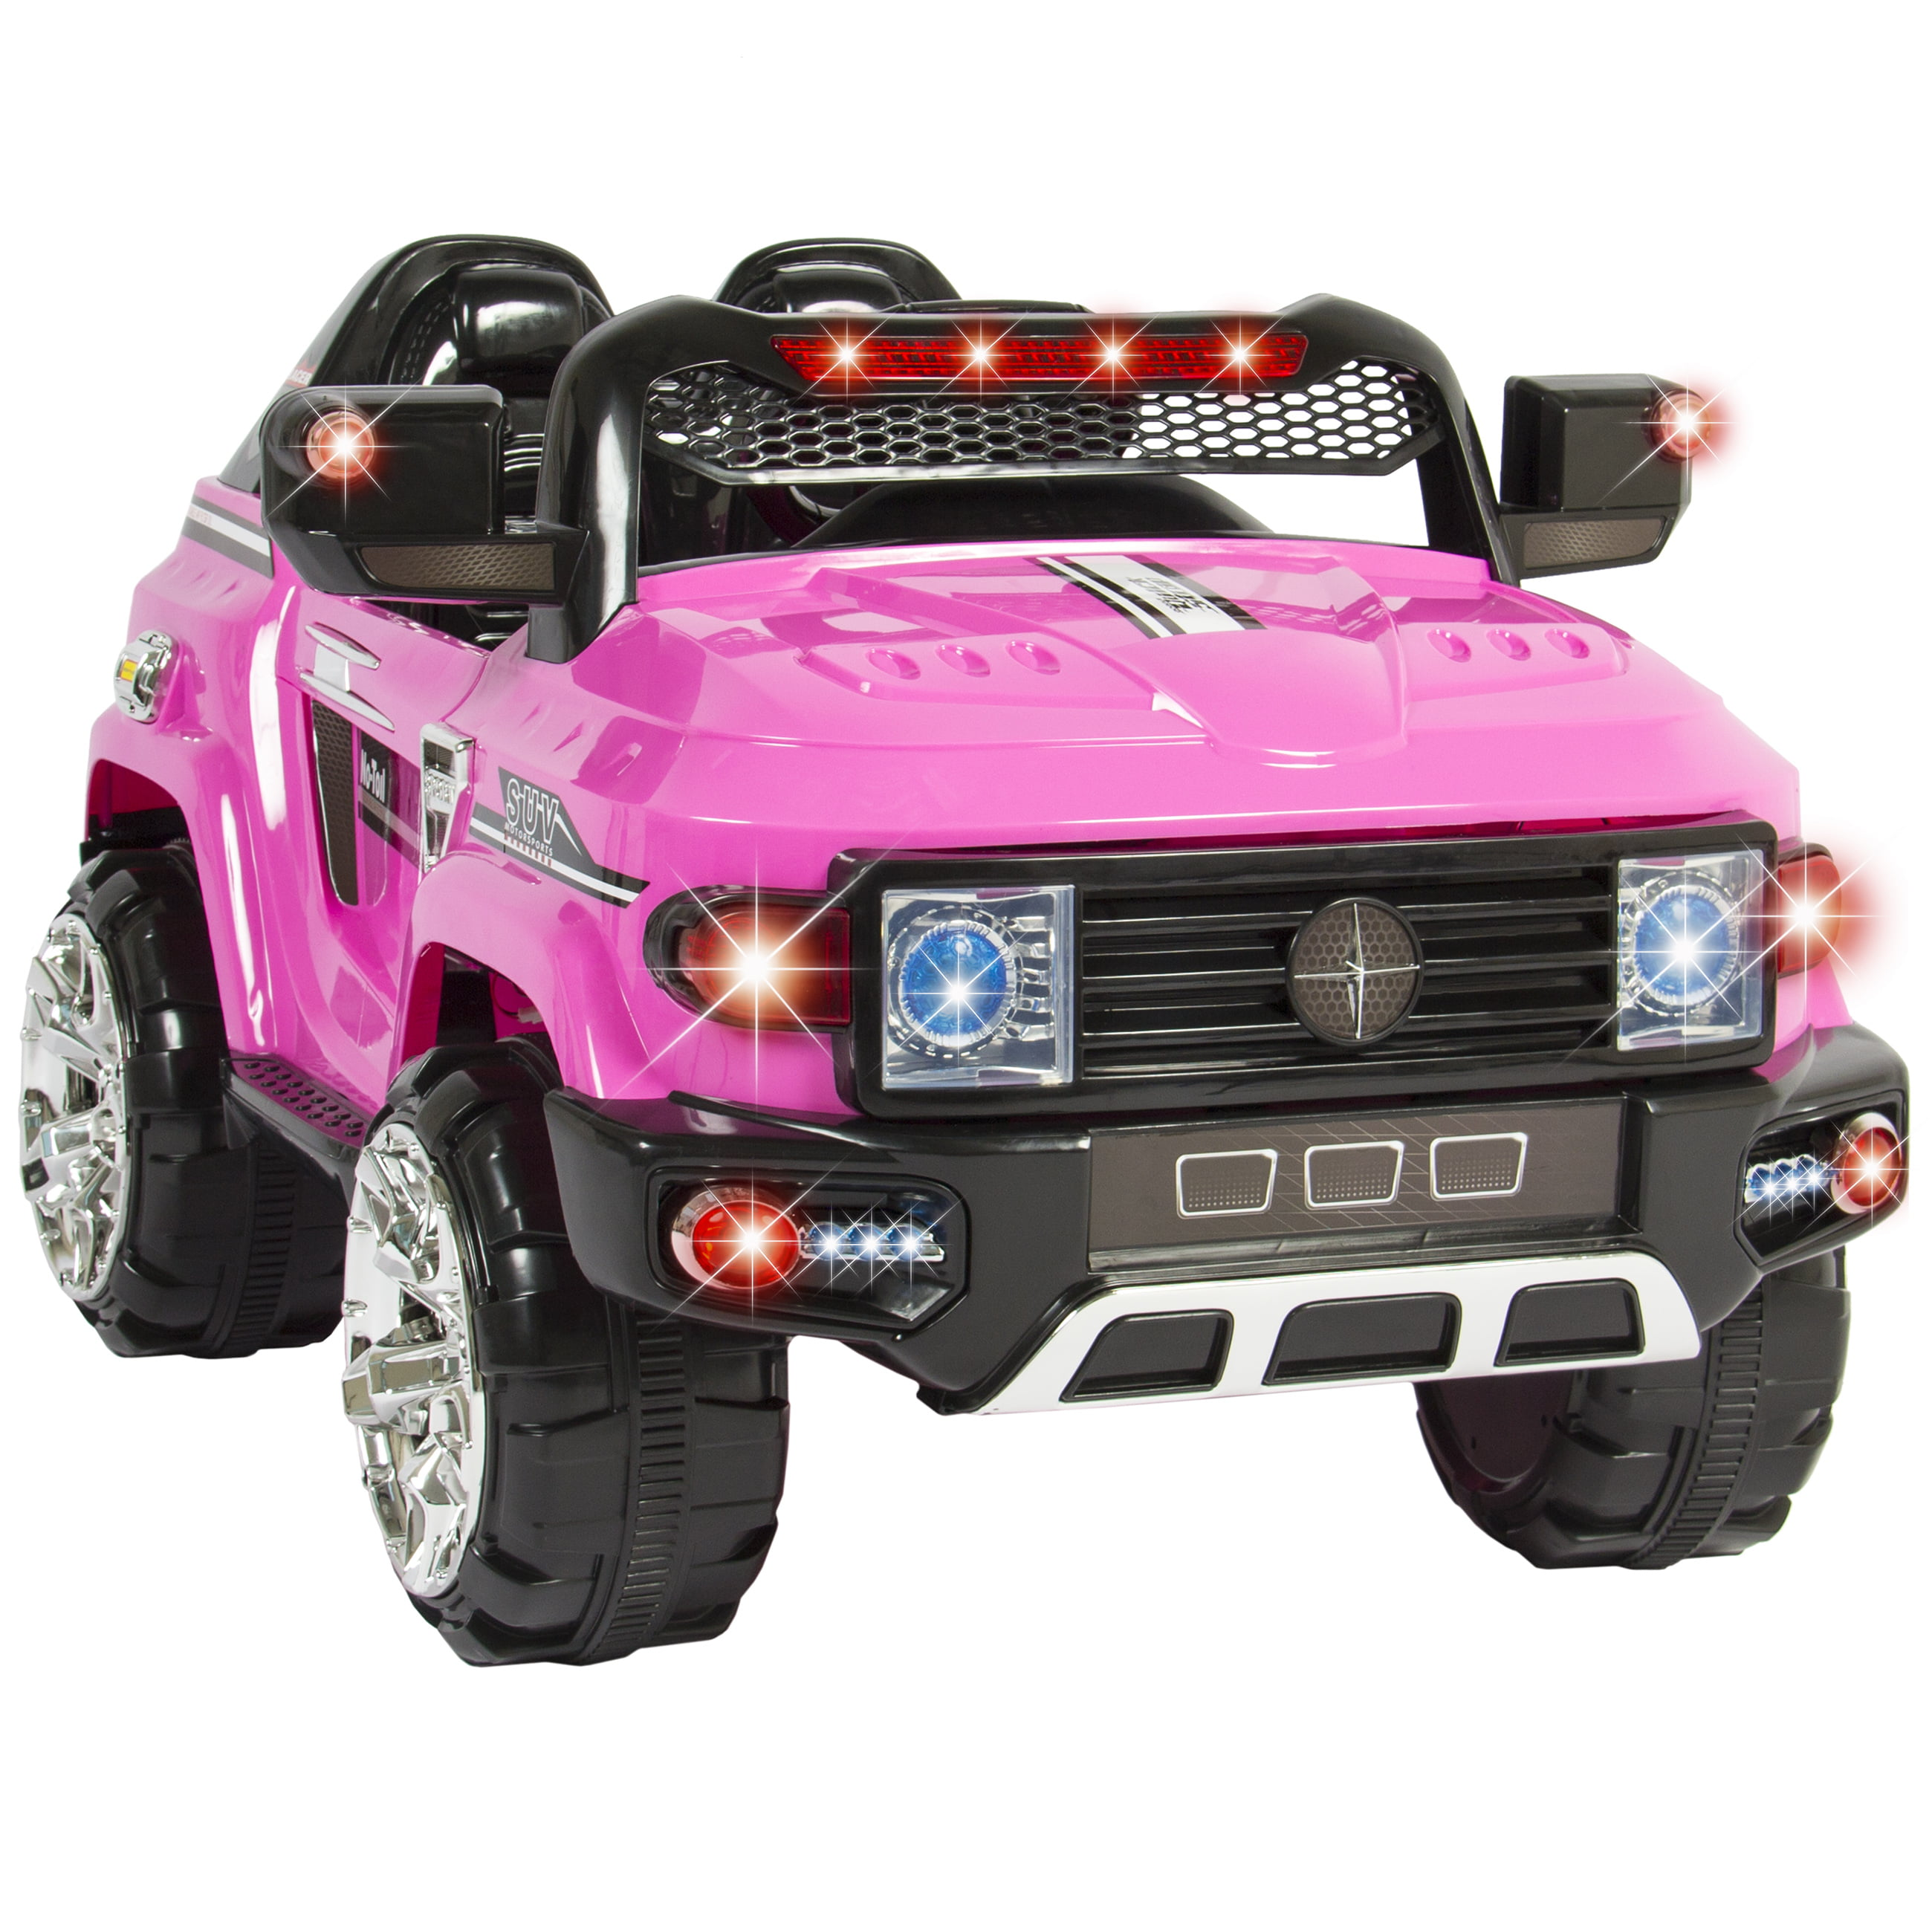 Best Choice Products 12v Kids Battery Ed Remote Control Electric Rc Ride On Car W 2 Sds Led Lights Mp3 Aux Red